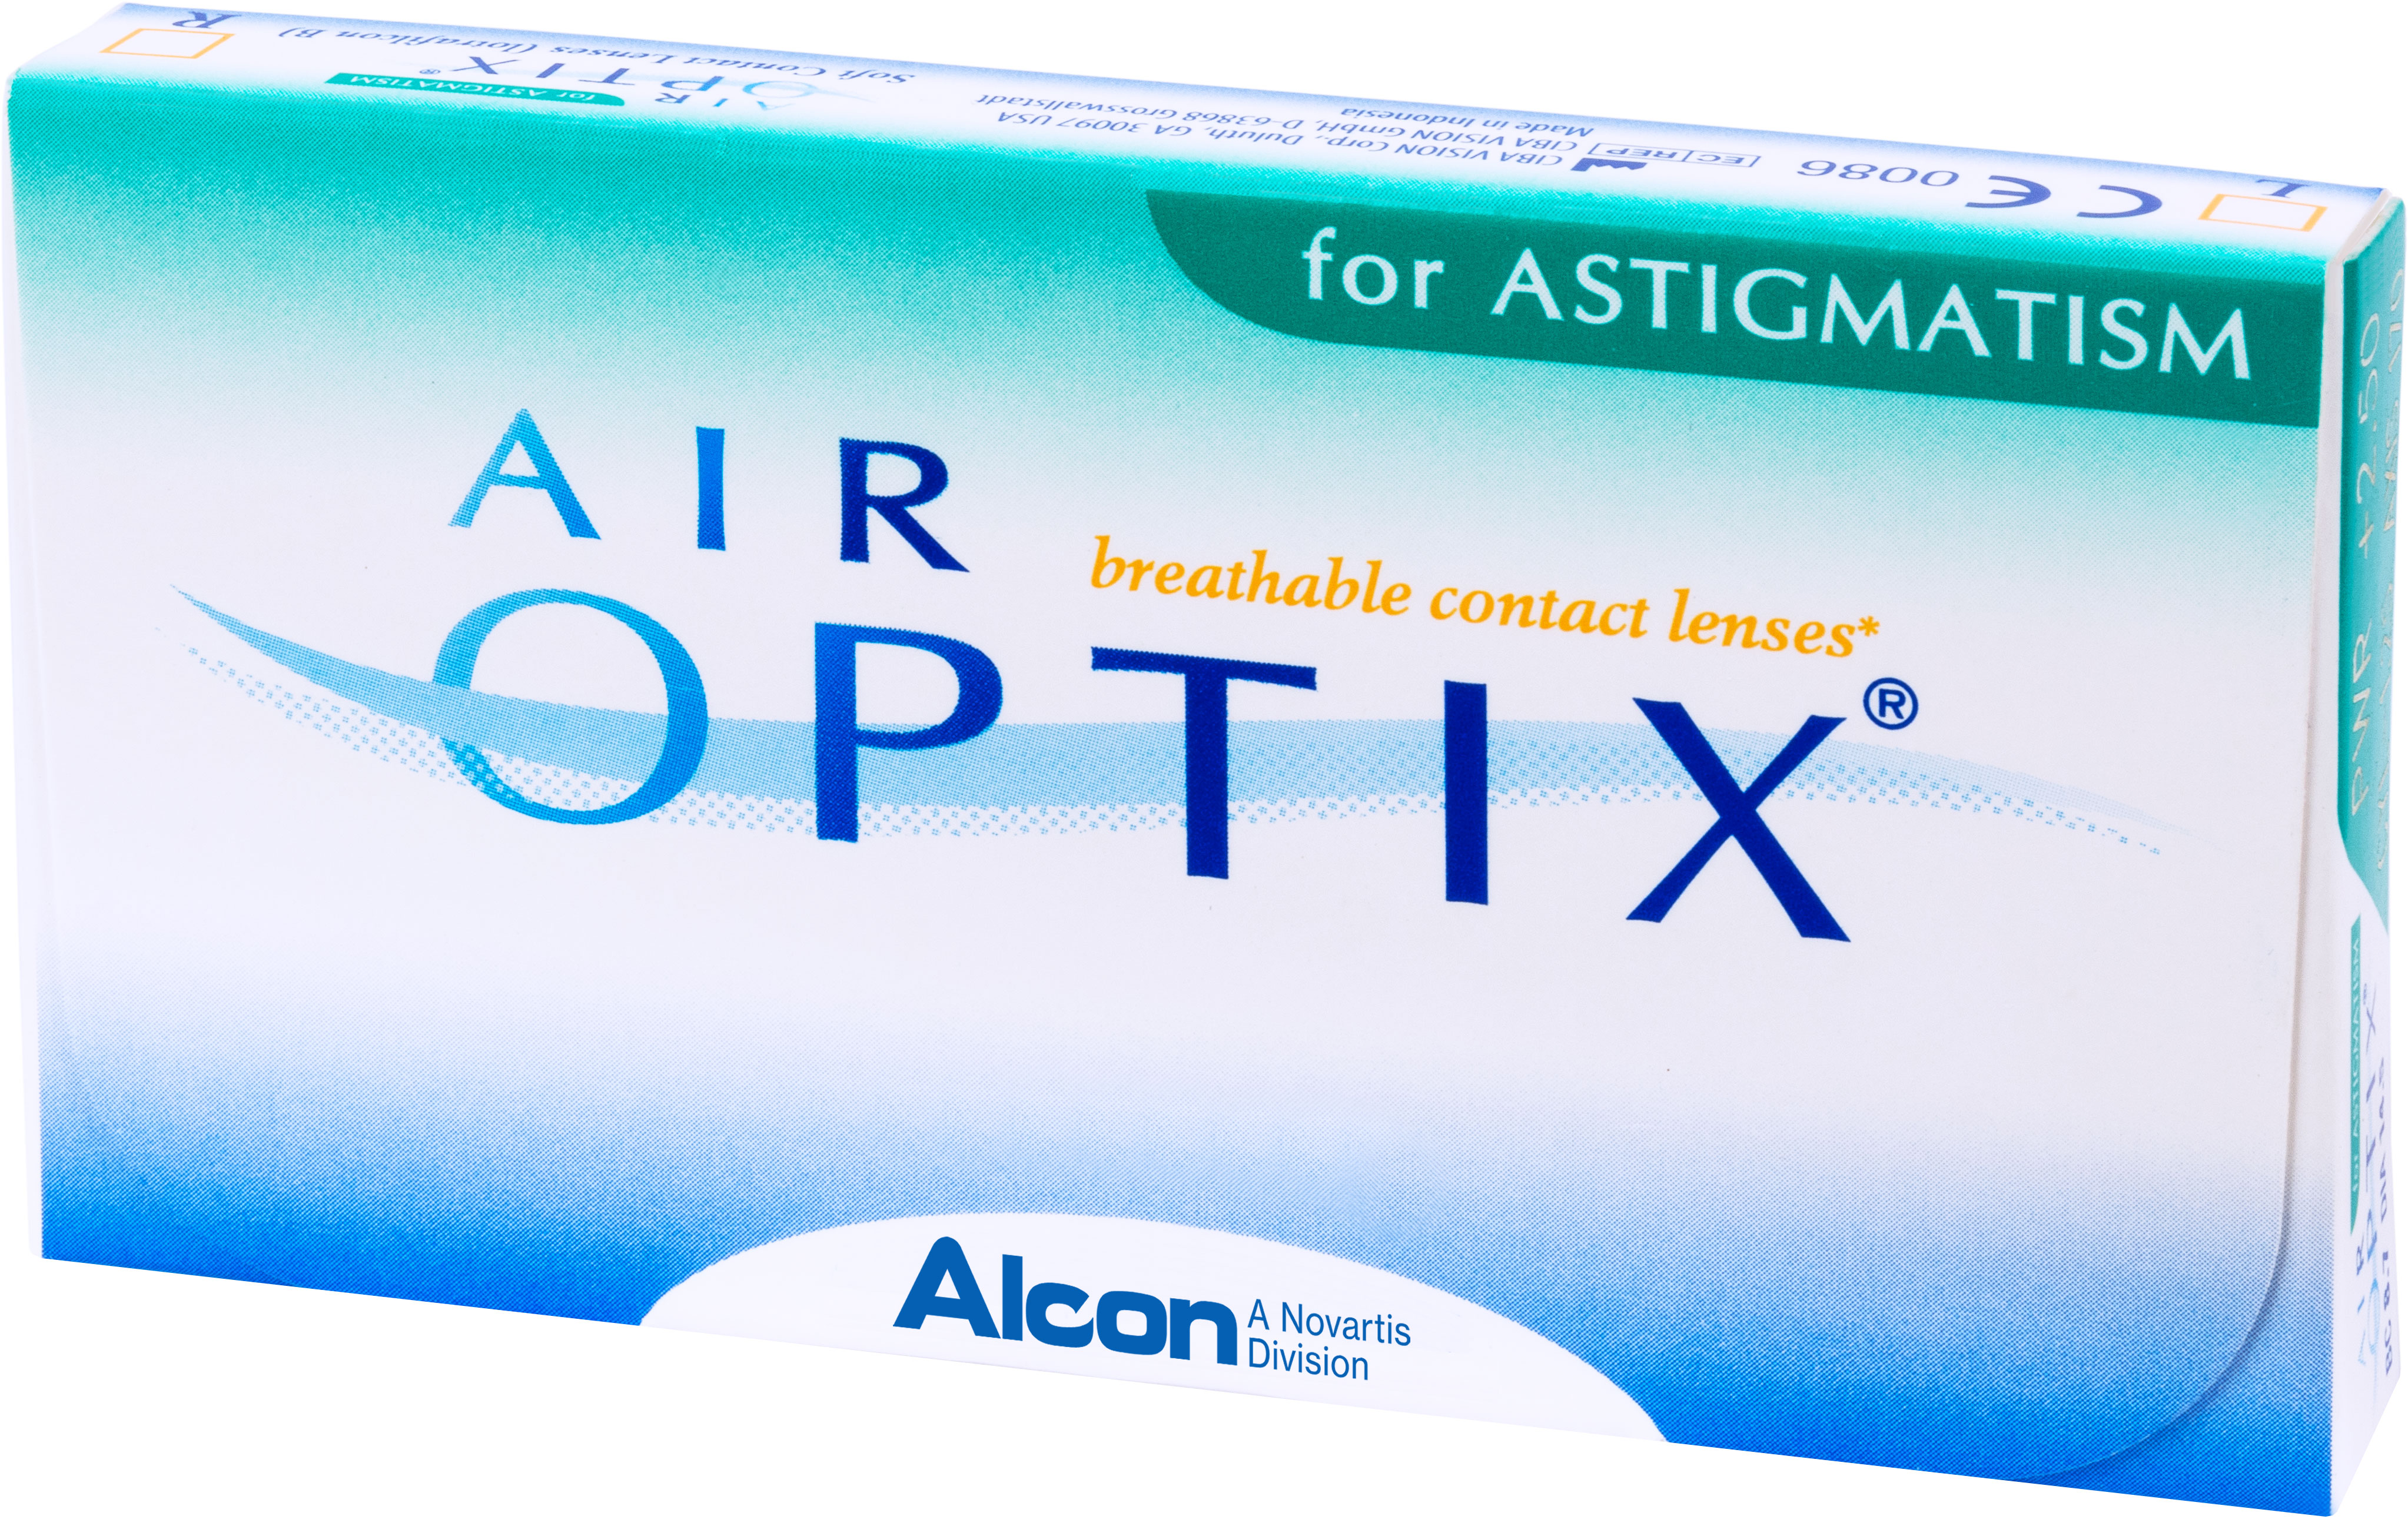 Аlcon контактные линзы Air Optix for Astigmatism 3pk /BC 8.7/DIA14.5/PWR +5.50/CYL -0.75/AXIS 1604690452041995with Hydraclear